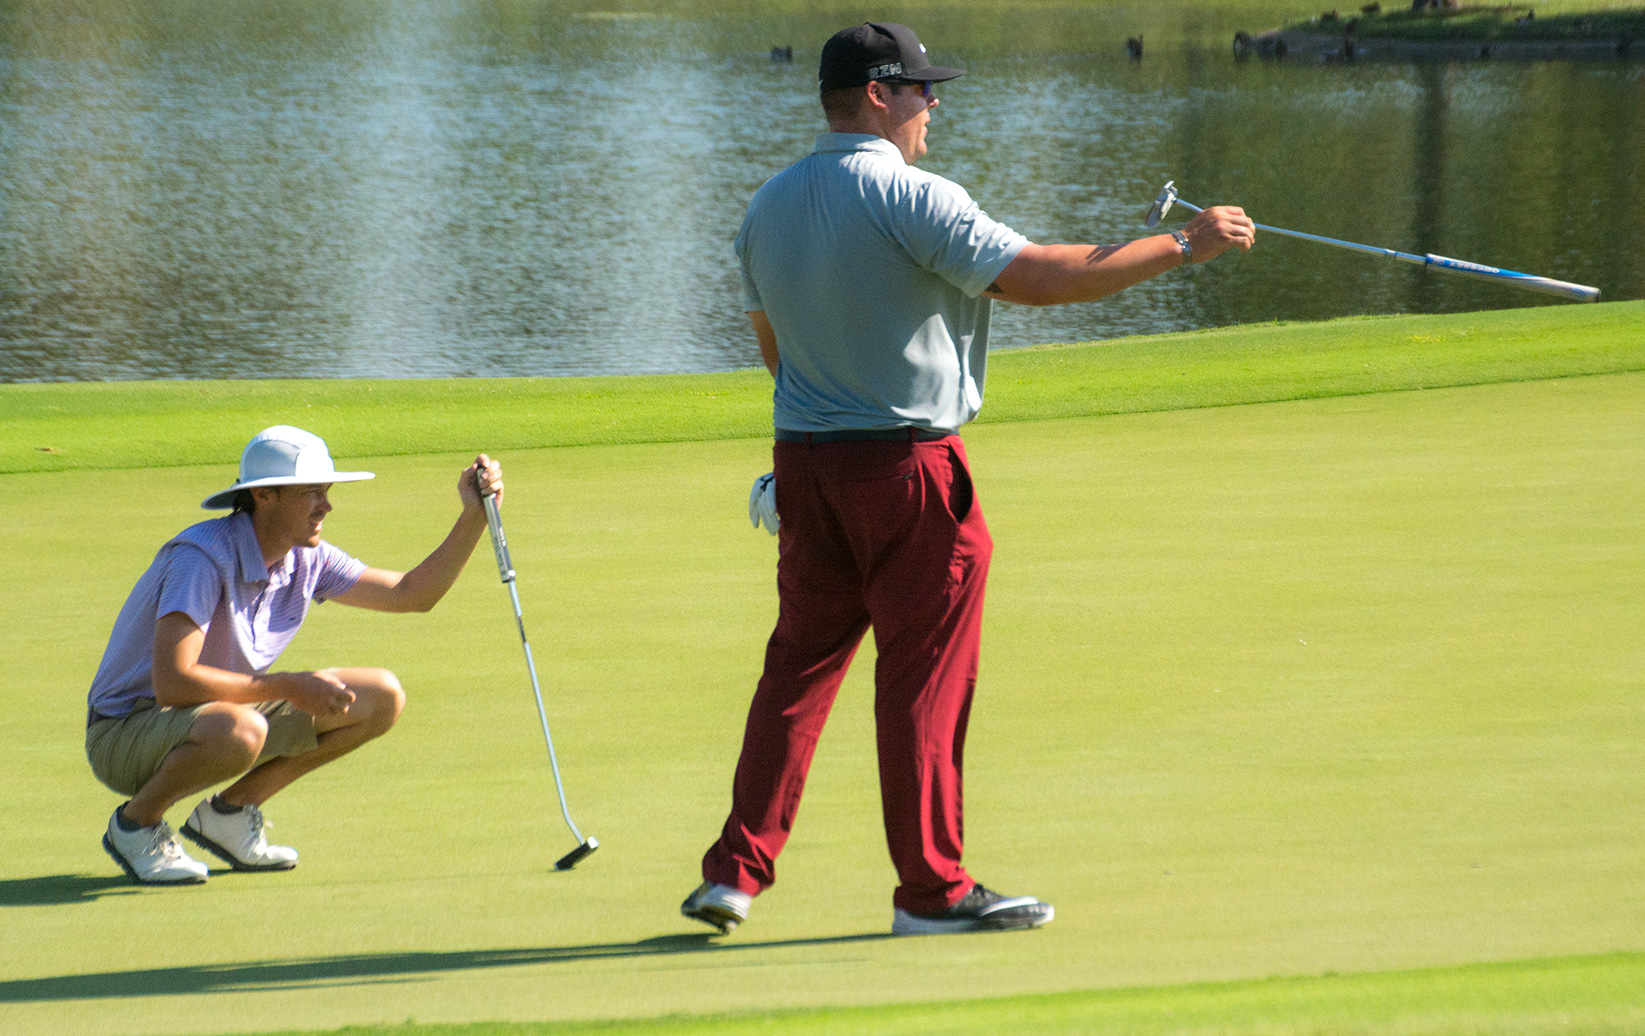 Two Teams Share Lead After Round One of the National Car Rental Pro-Scratch Championship